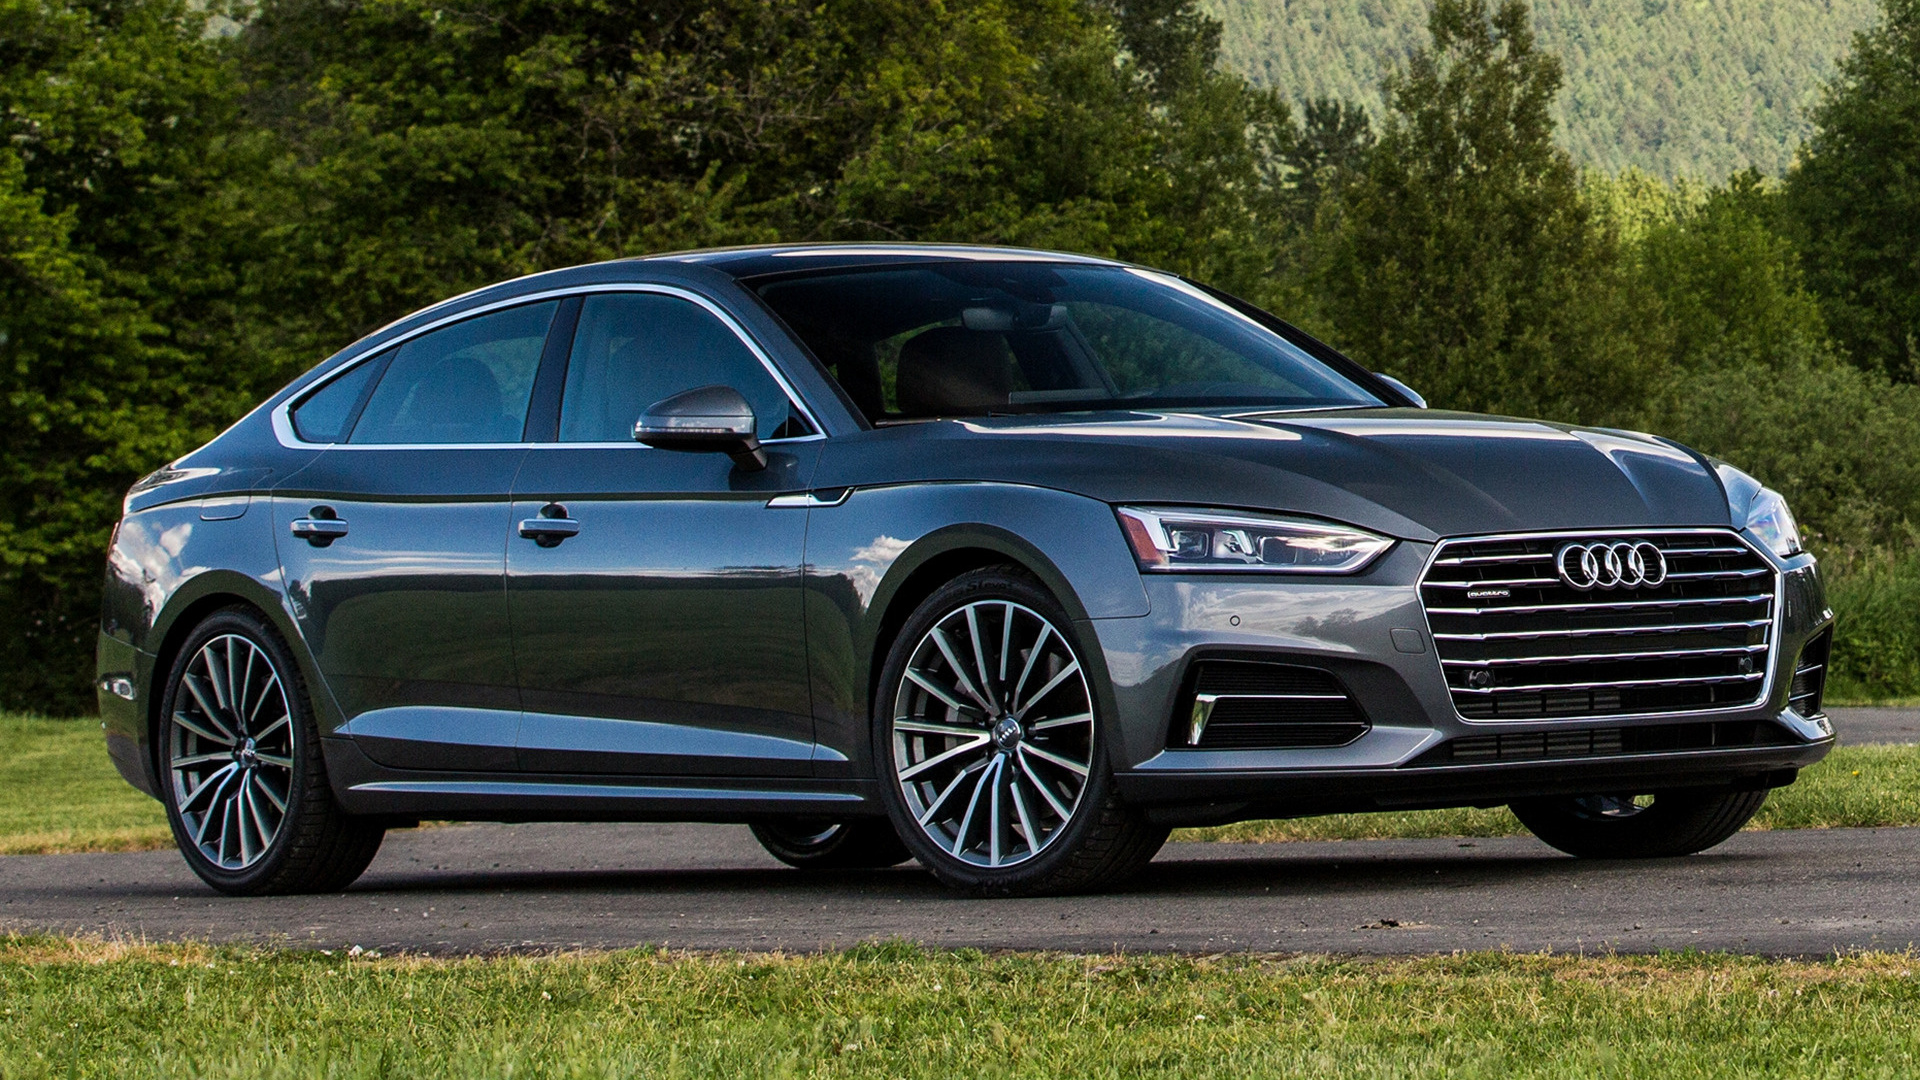 2018 audi a5 sportback us wallpapers and hd images car pixel. Black Bedroom Furniture Sets. Home Design Ideas